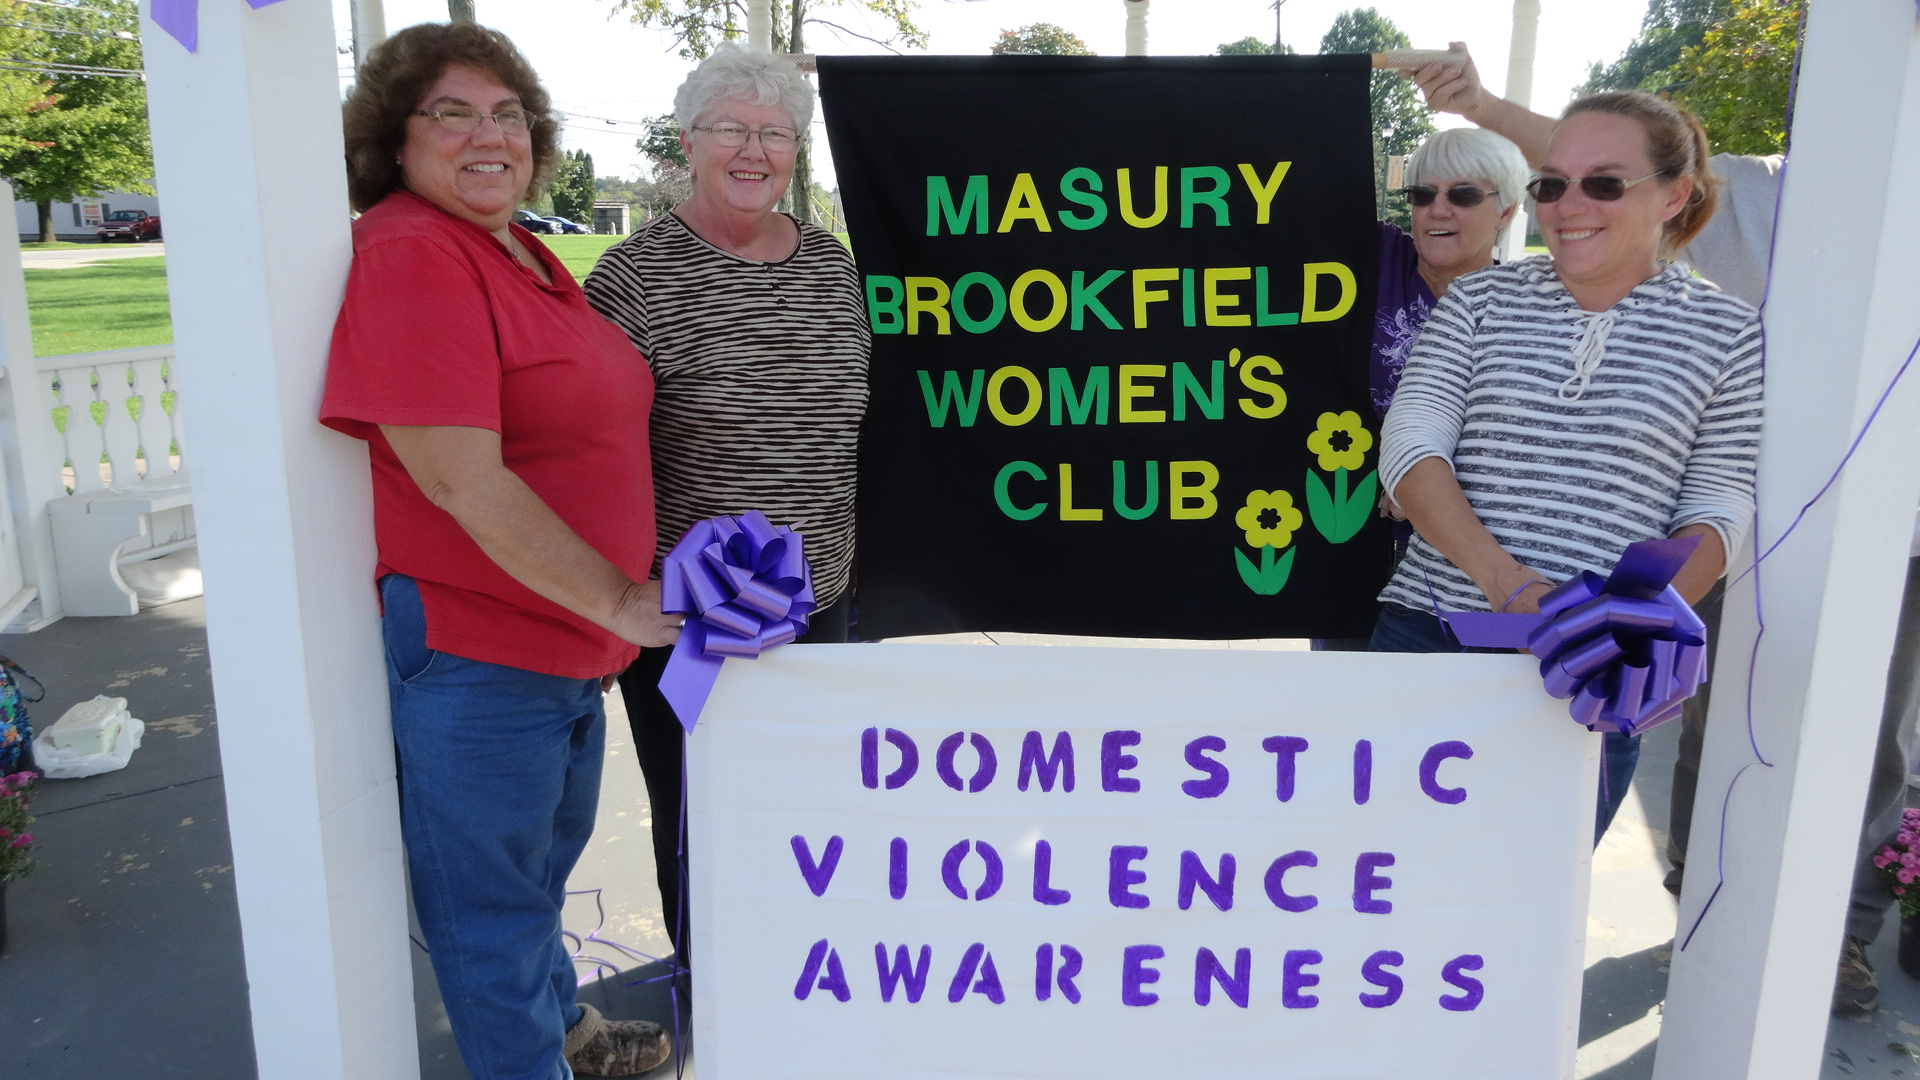 Club members are, from left, Carrie Davis, Sis Hook, Ruth Hawkins and Becky Zyvonoski.